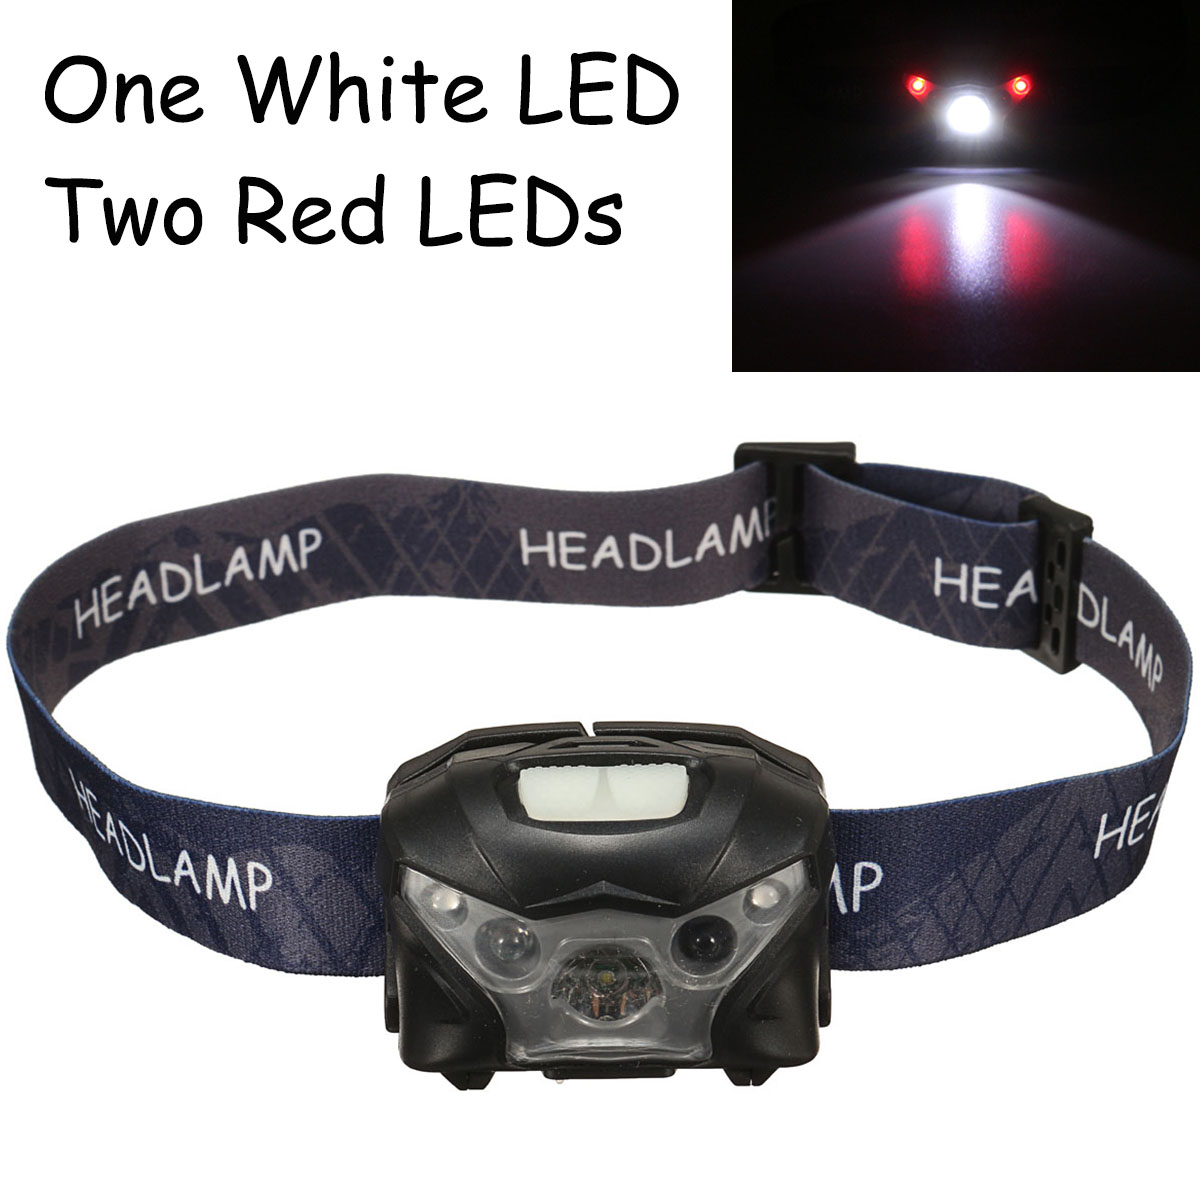 Mini USB Rechargeable LED HeadLamp Body Motion Sensor LED Bicycle Head Light Lamp Outdoor Camping Flashlight with 2 Red Lights 3000lm mini rechargeable led headlamp body motion sensor led bicycle head light lamp outdoor camping flashlight with usb